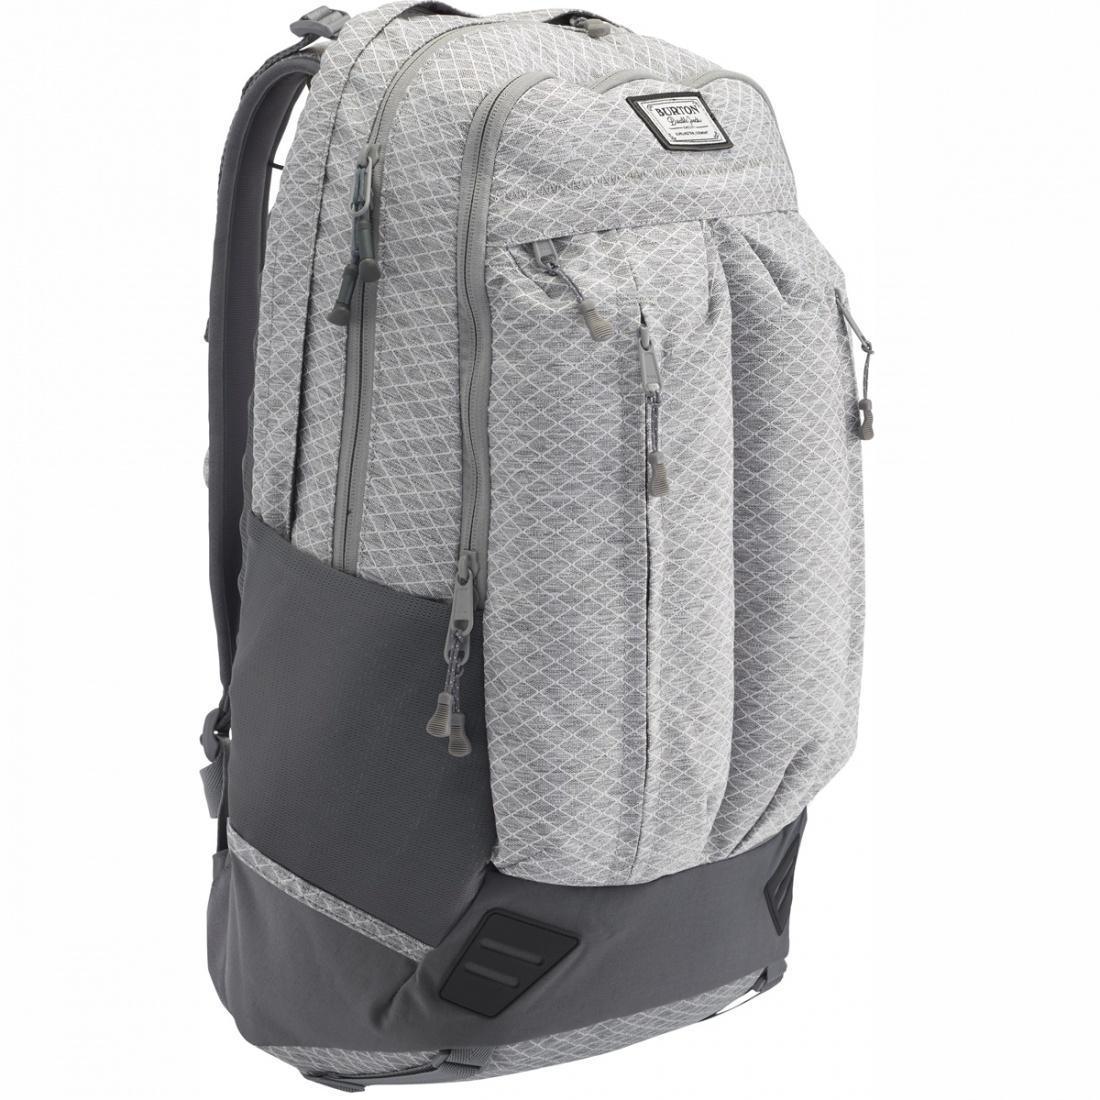 Burton Рюкзак Burton Bravo Backpack One size burton парафин burton all season fast wax gray fw18 one size